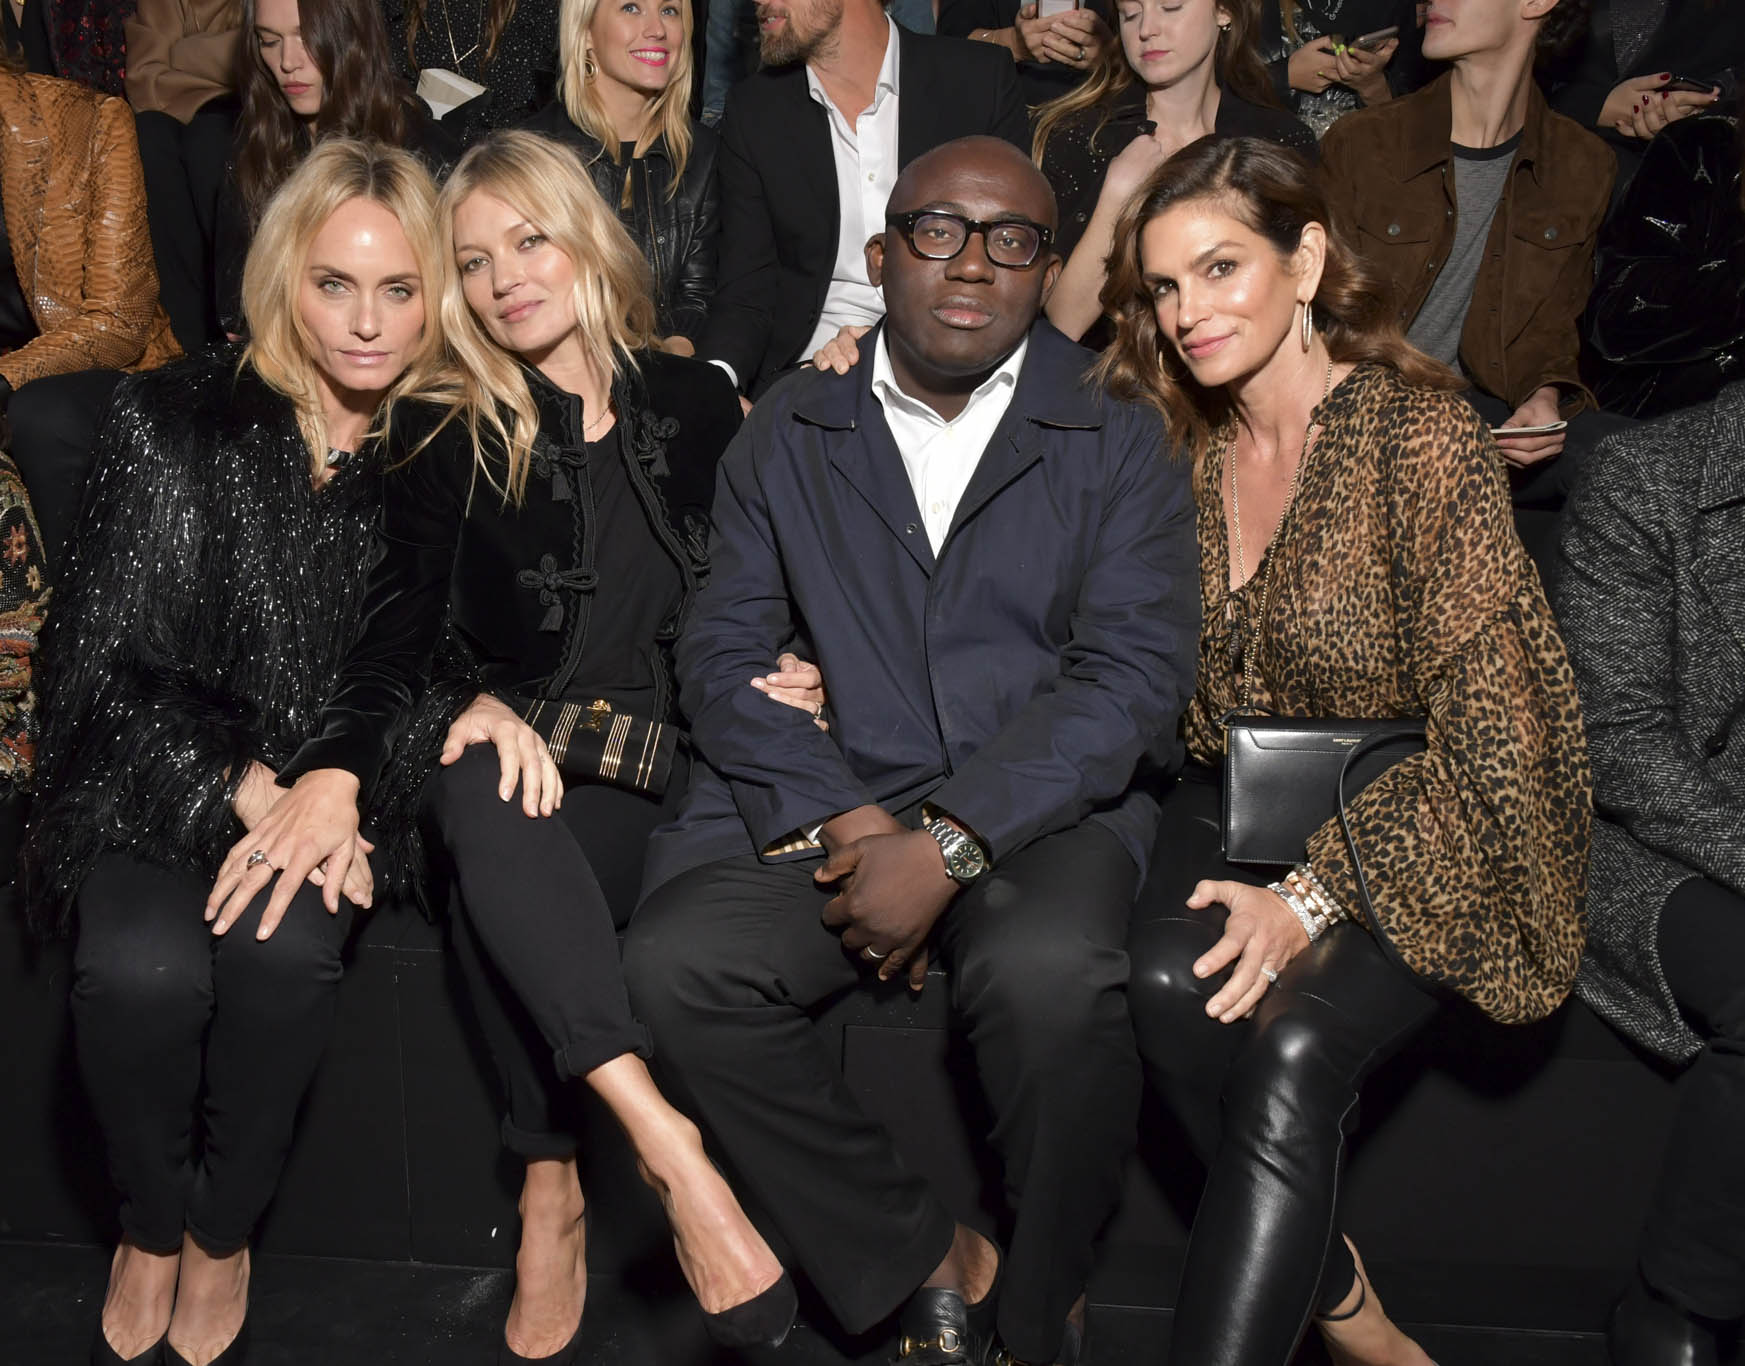 Amber Valletta, Kate Moss, Edward Enninful and Cindy Crawford